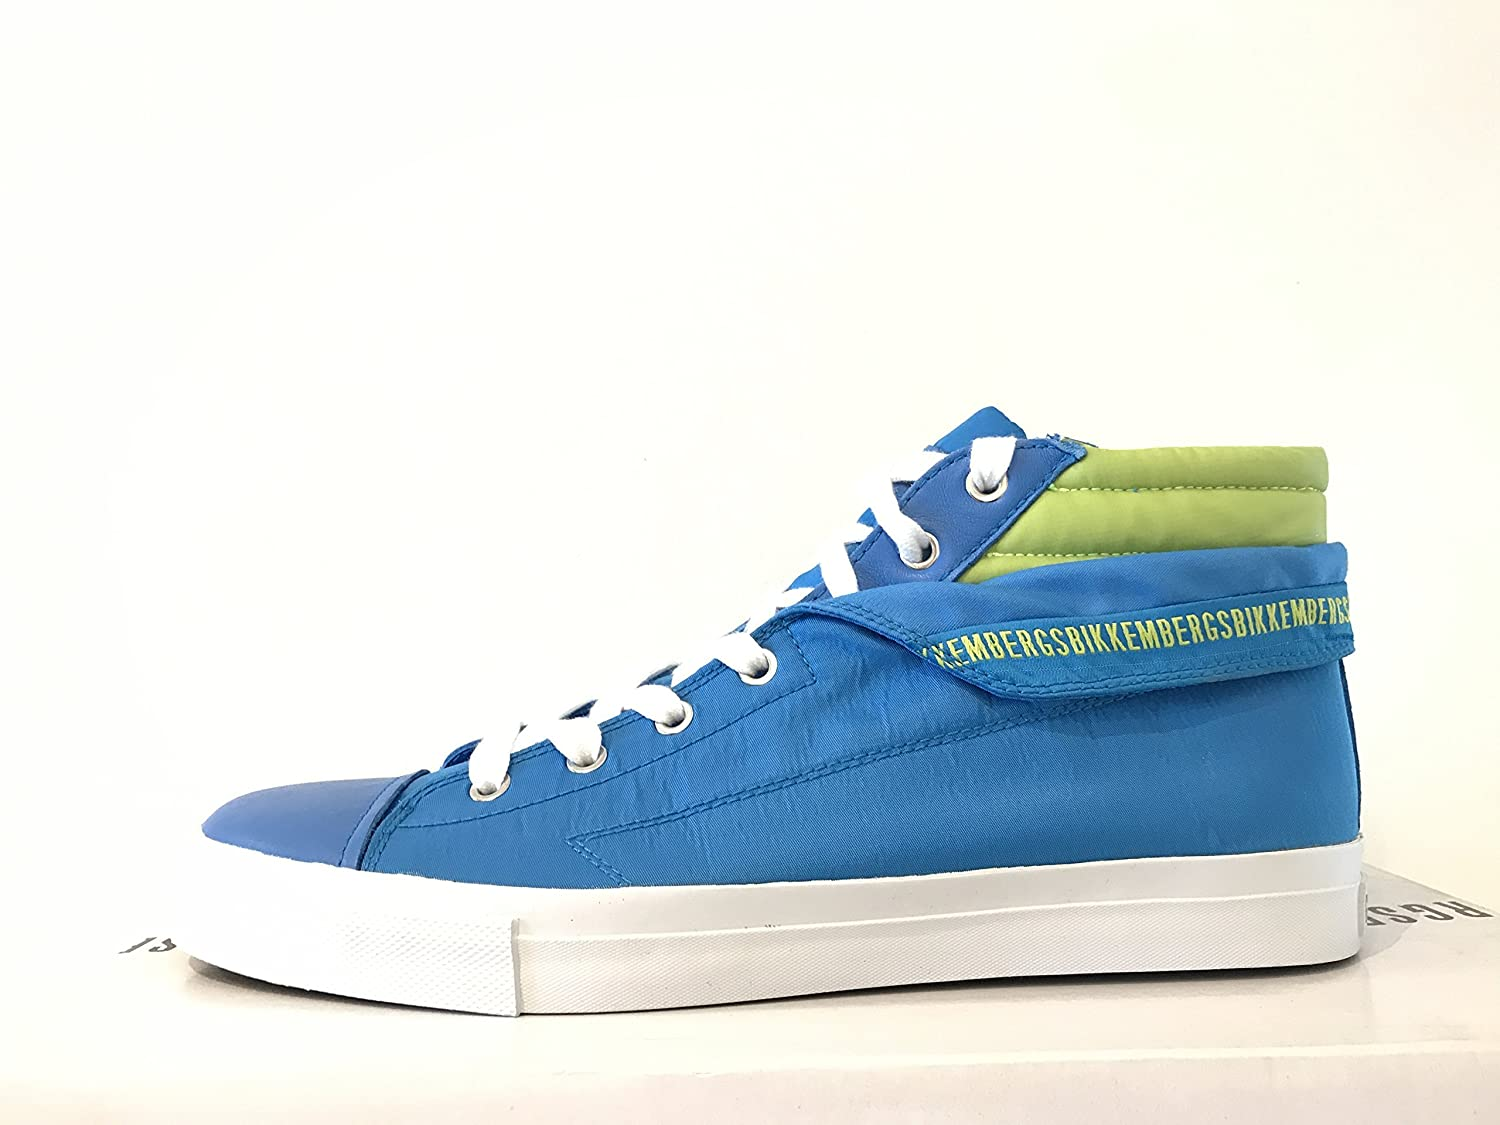 DIRK BIKKEMBERGS Mens shoes Sneakers Mid 647 Fabric blueette Green